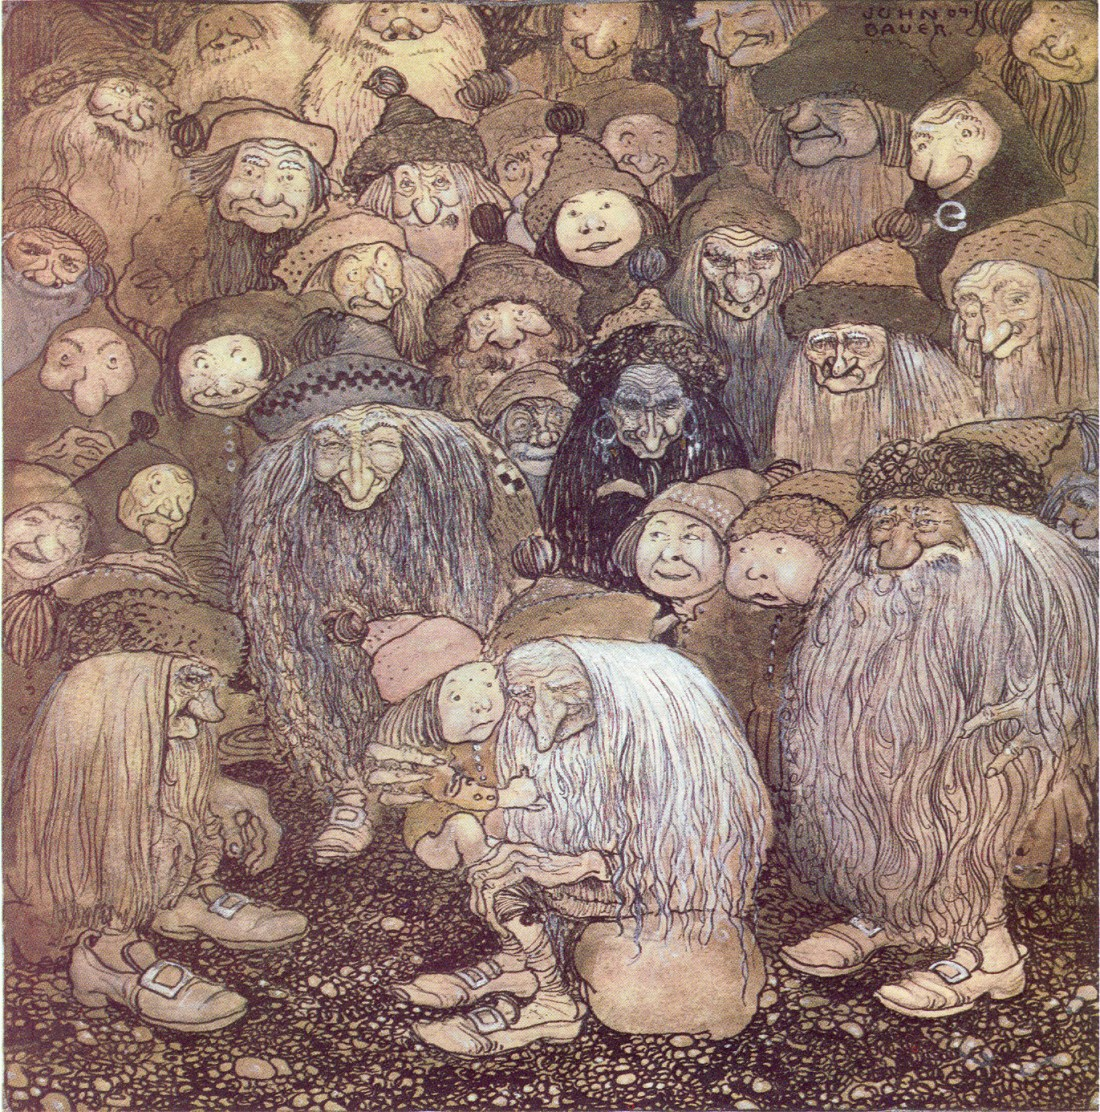 Trolls may form their own communities, but it is never our community. (The Trolls and the Gnome Boy © John Bauer)